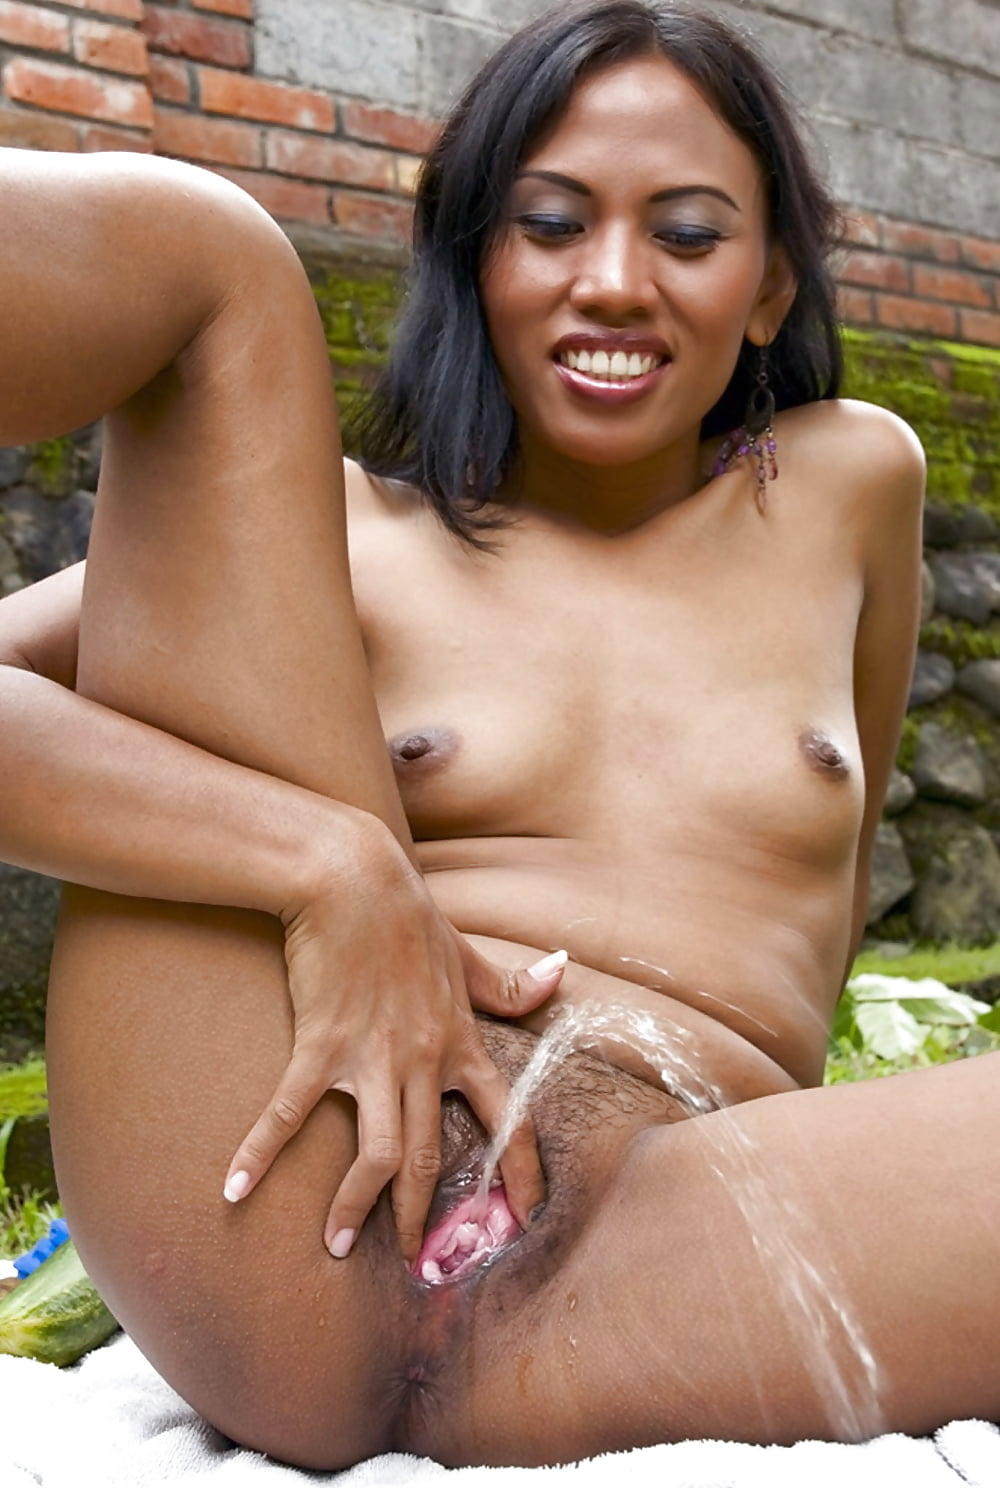 Black piss porn galleries, polish big tited wonen nude